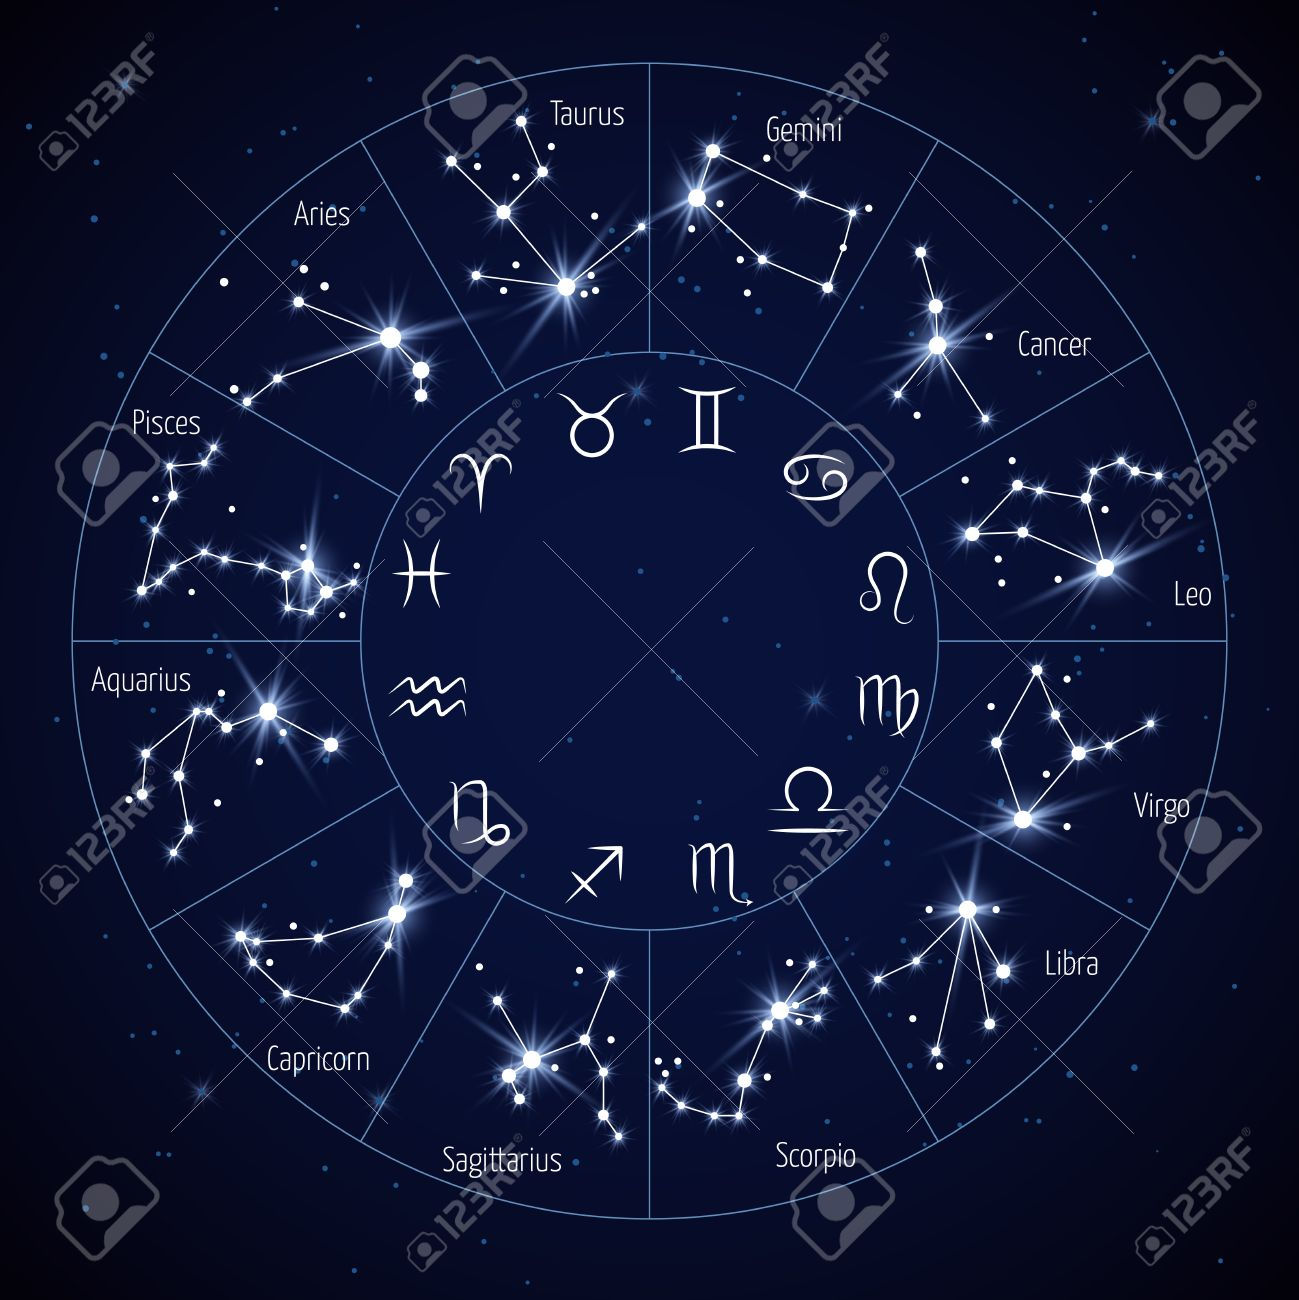 Zodiac Constellation Map With Leo Virgo Scorpio Libra Aquarius - Zodiac constellations map